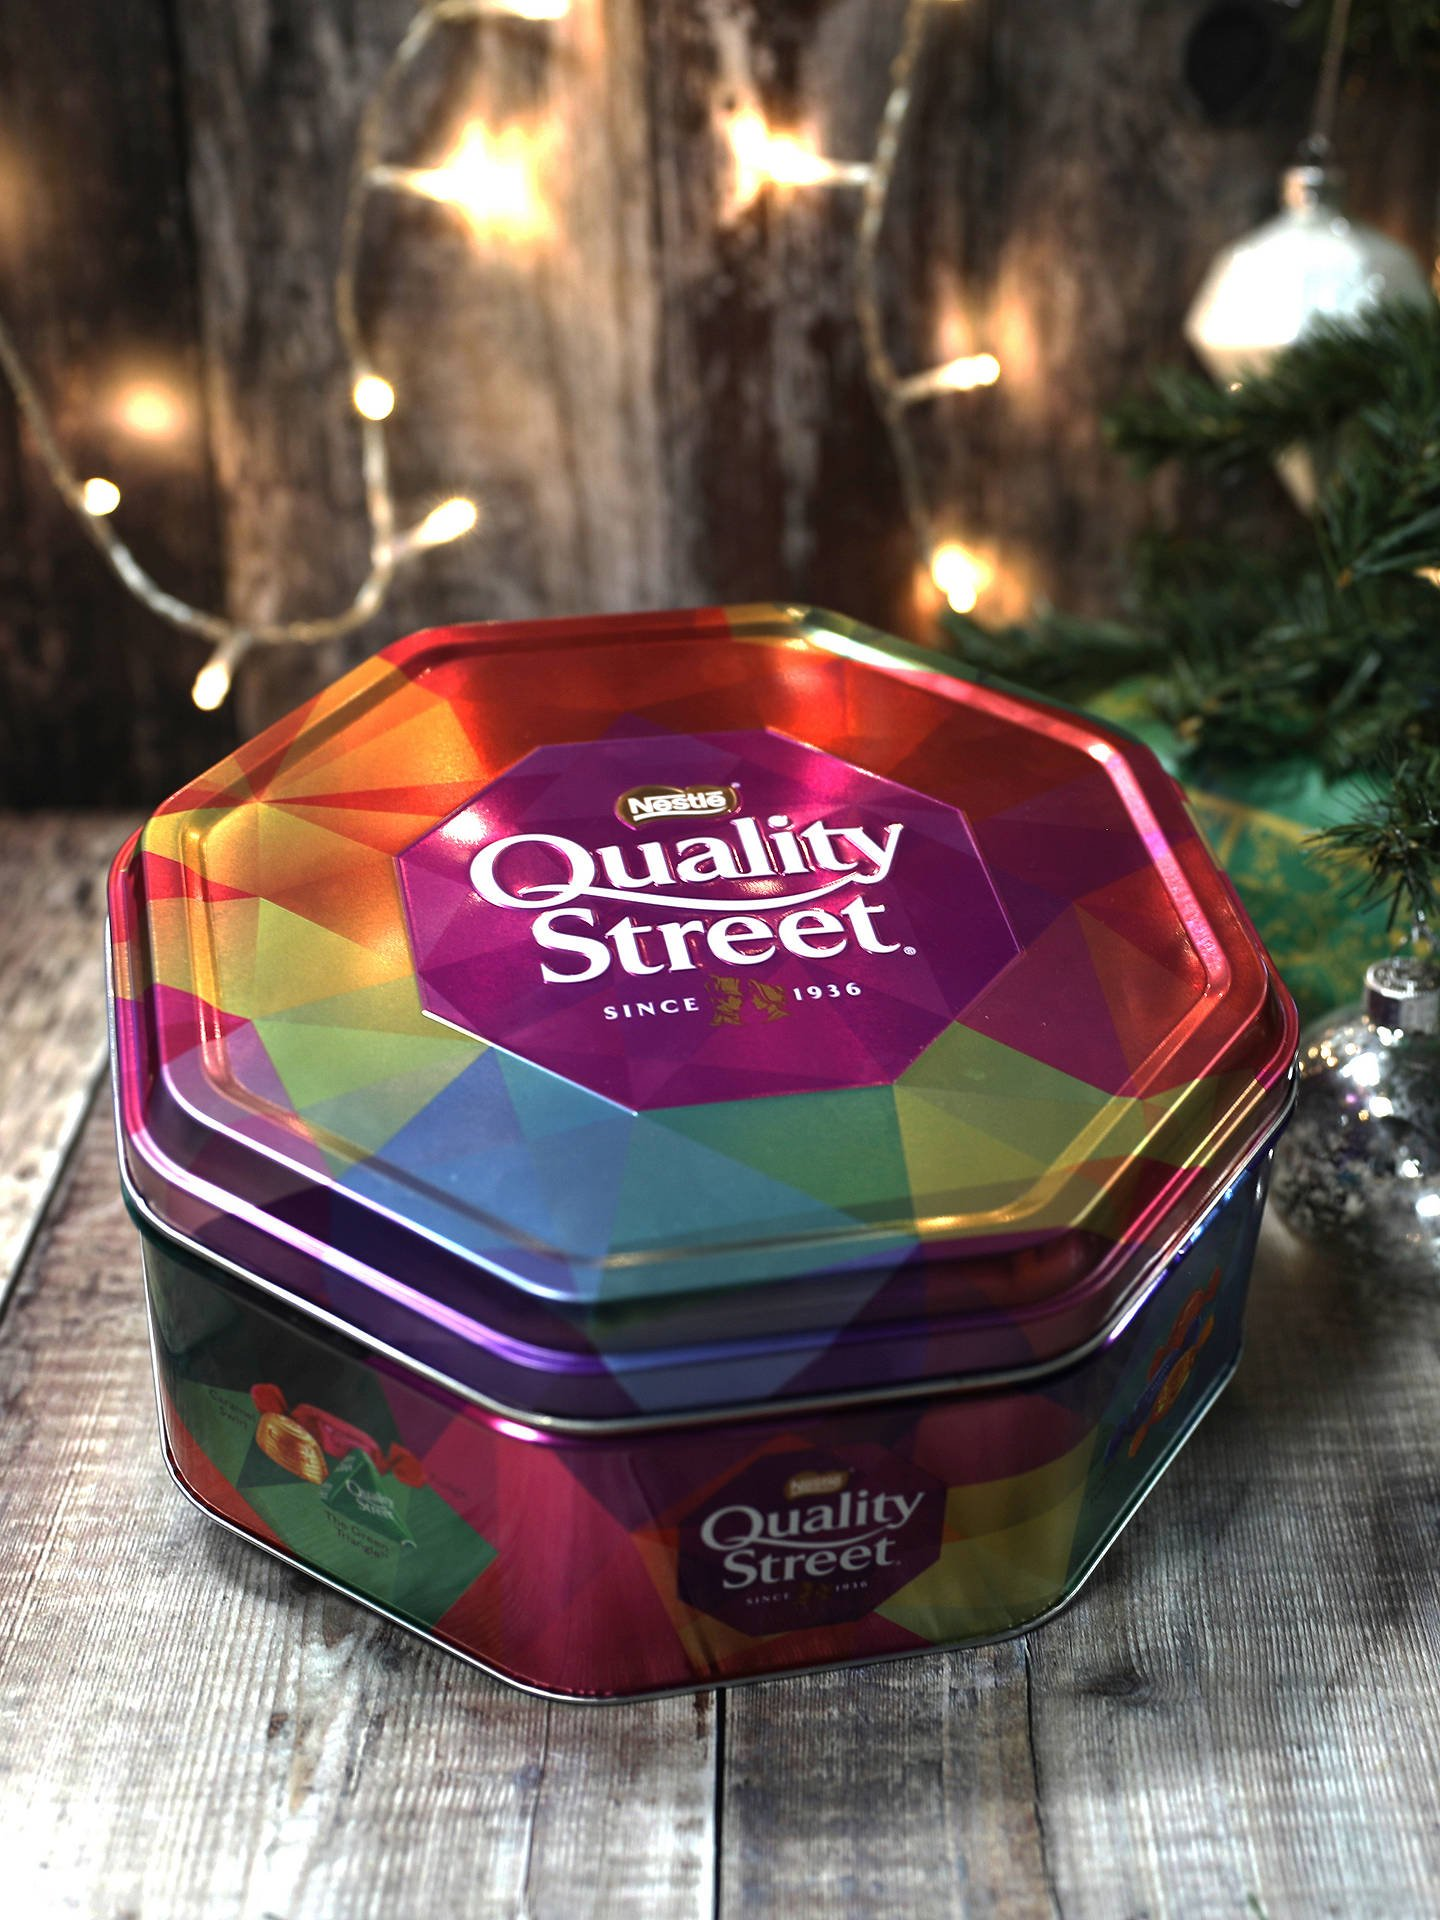 237732681alt2 Quality Street, Celebrations And Roses Tins Have Shrunk Again